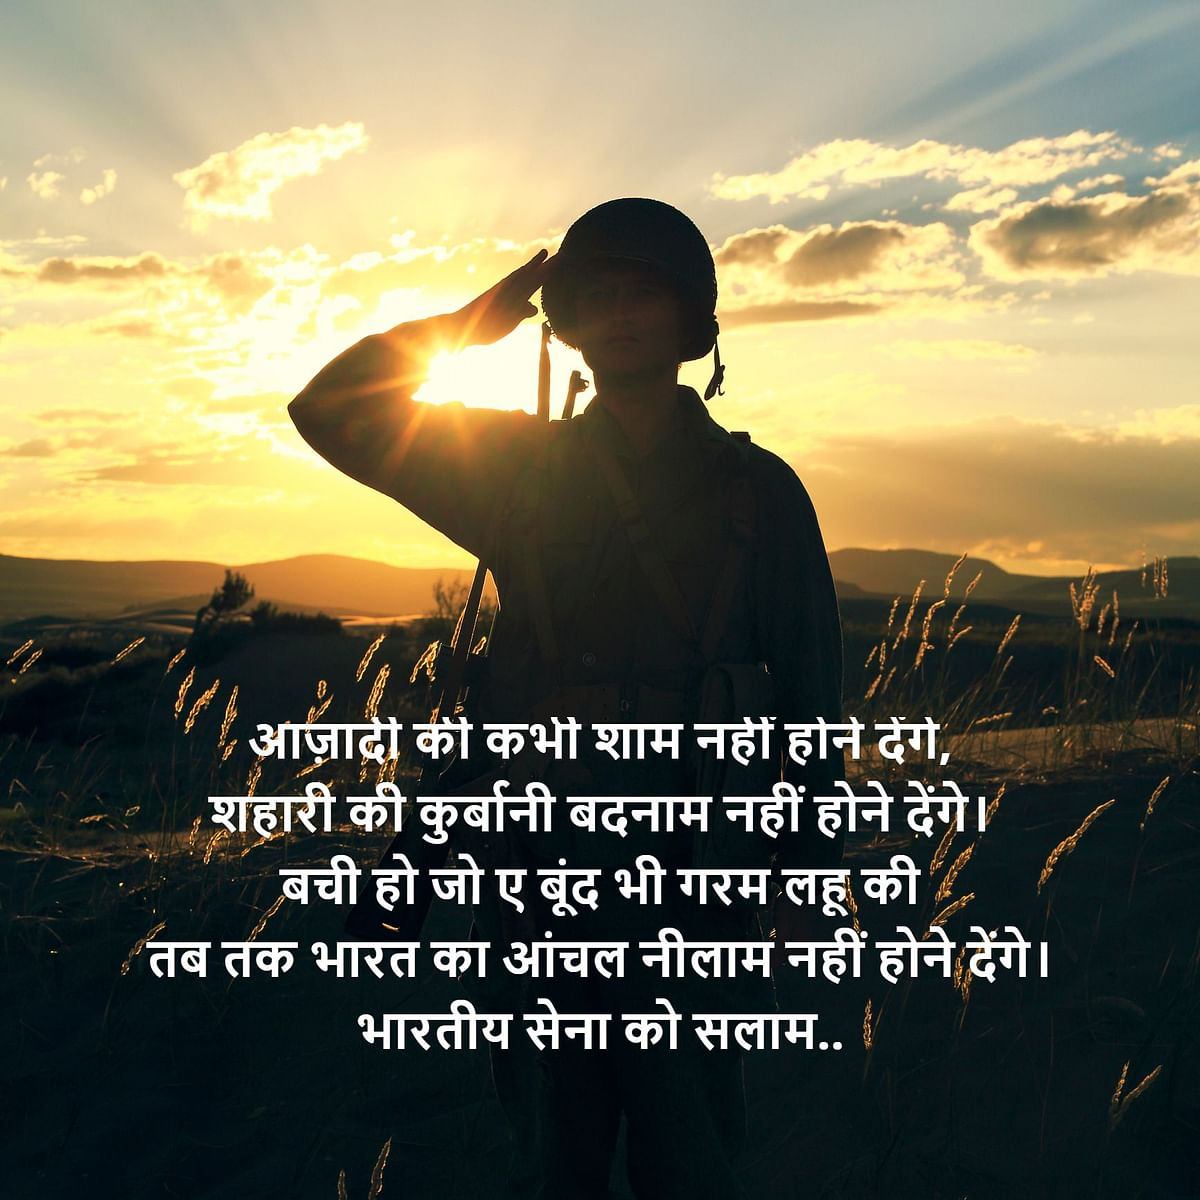 Indian Army Day 2021 Wishes